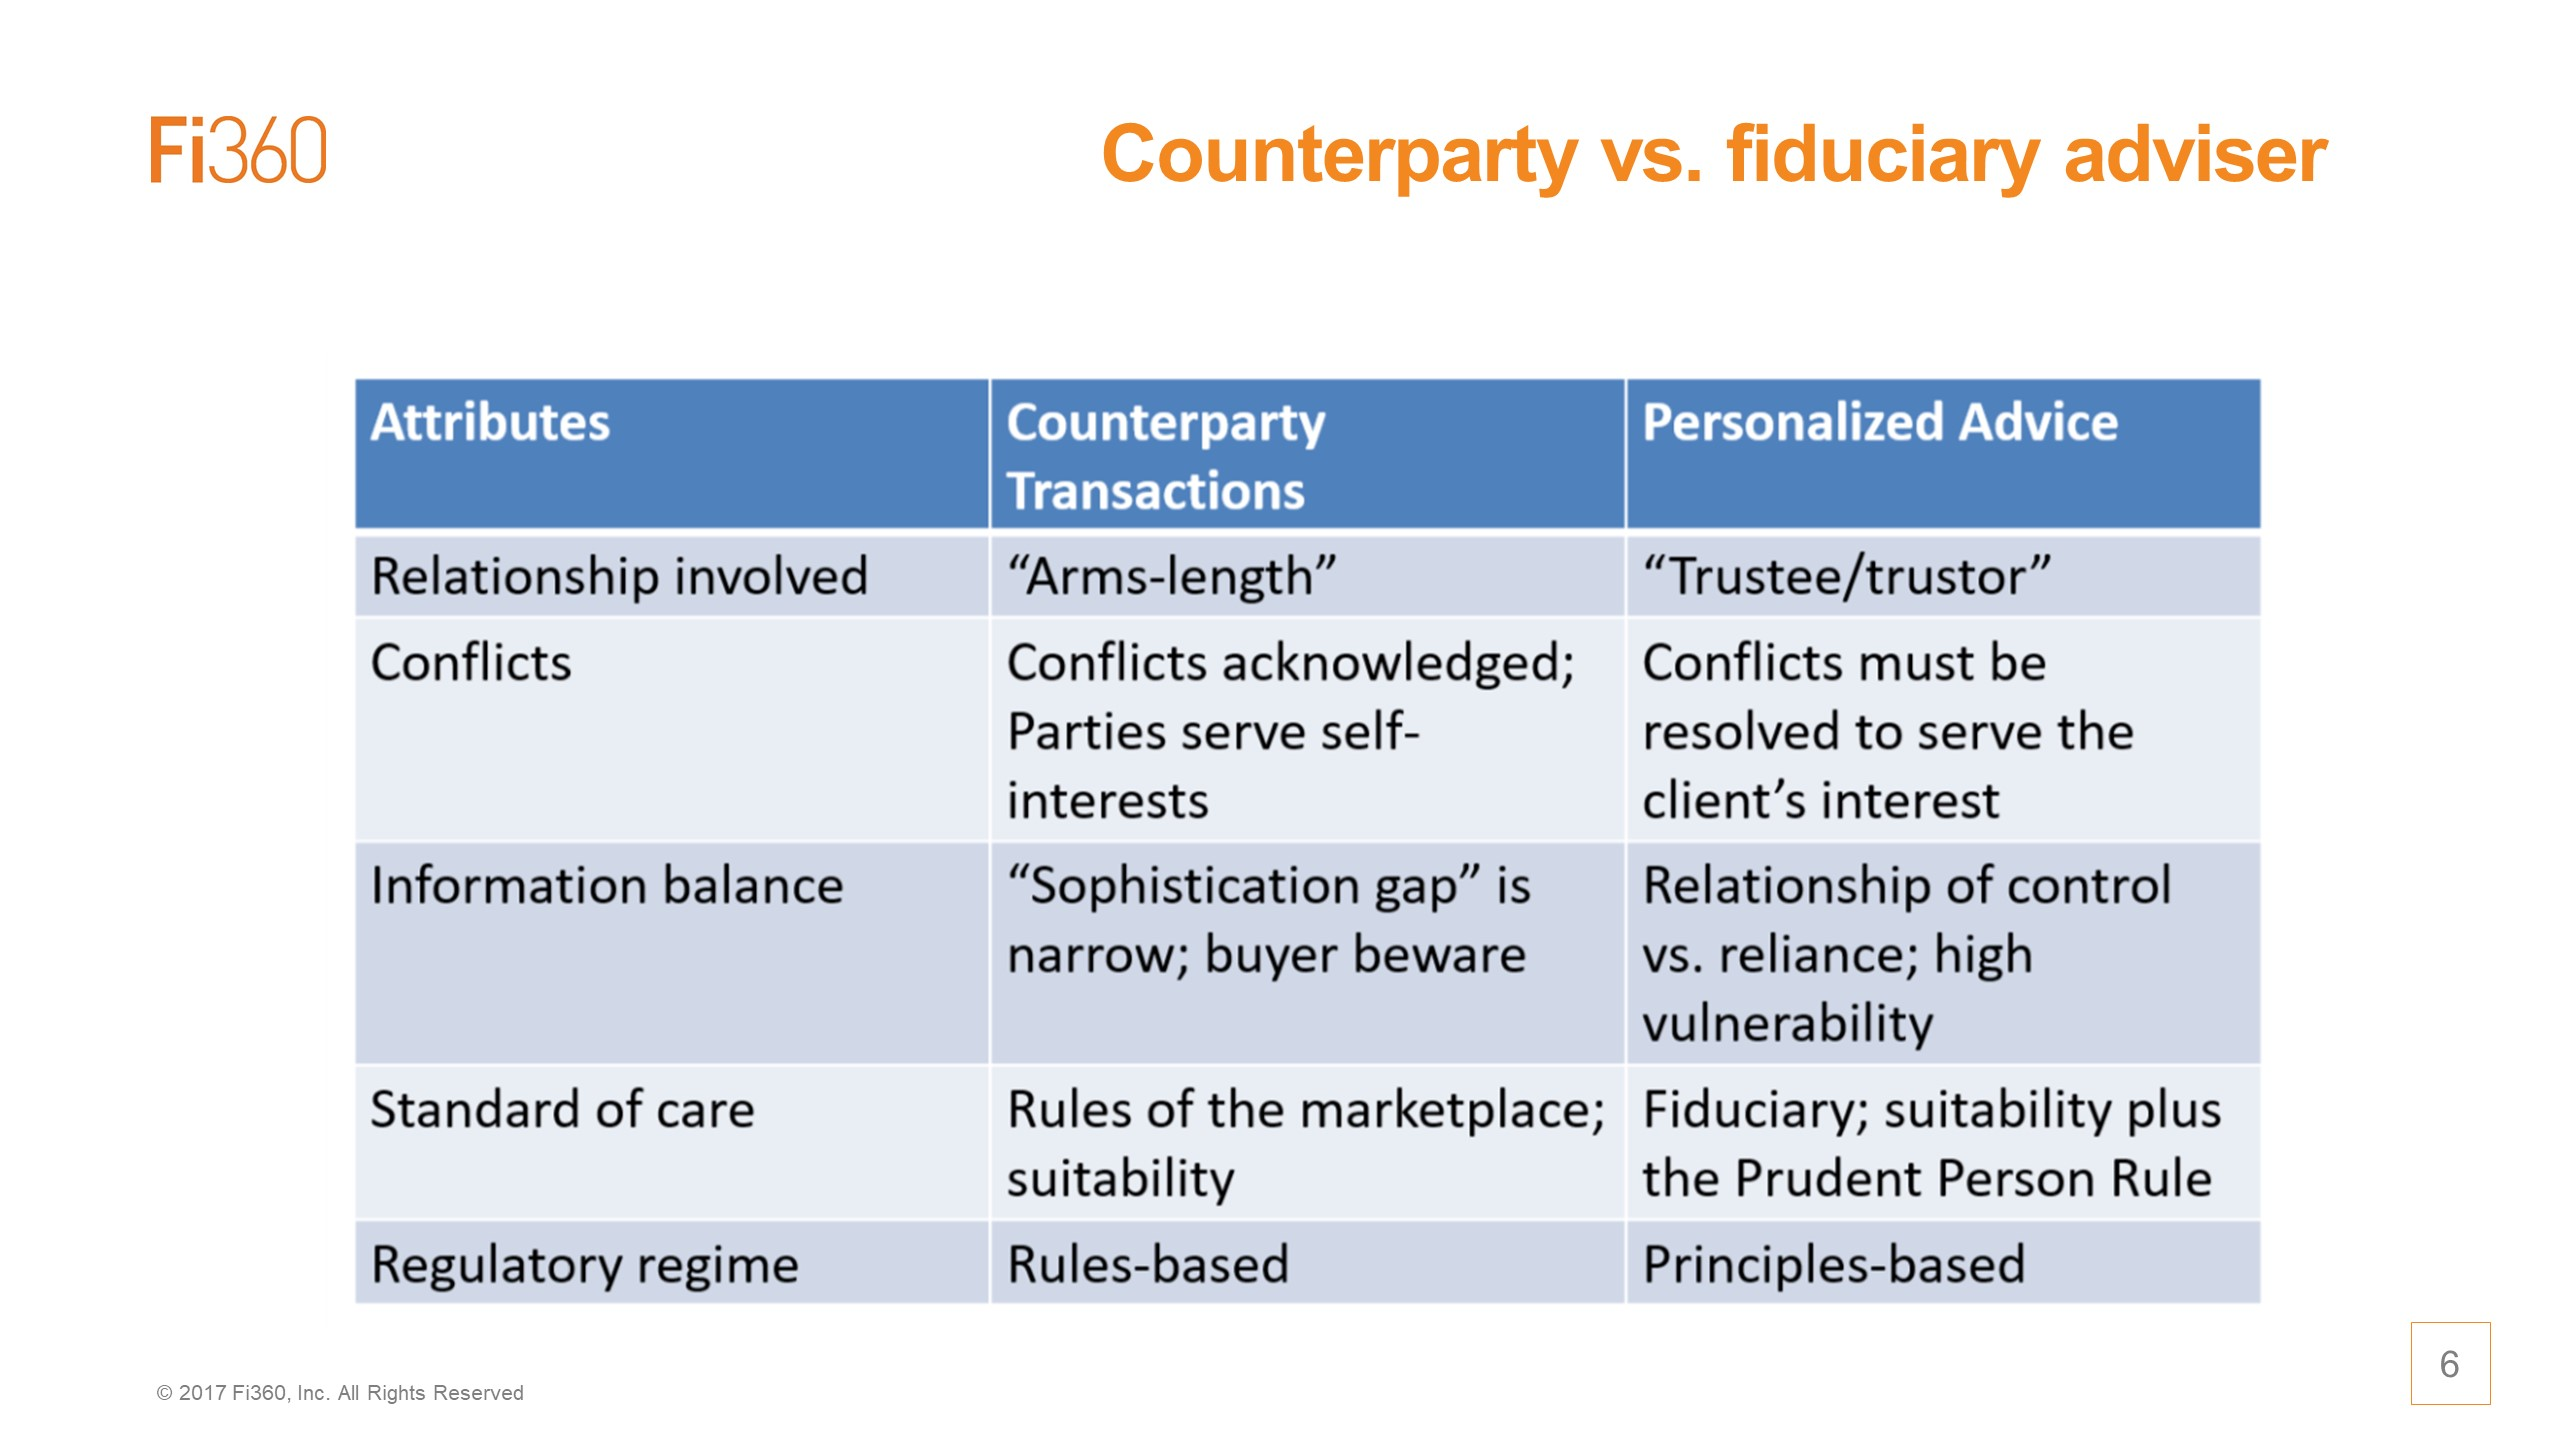 Counterparty vs Fiduciary